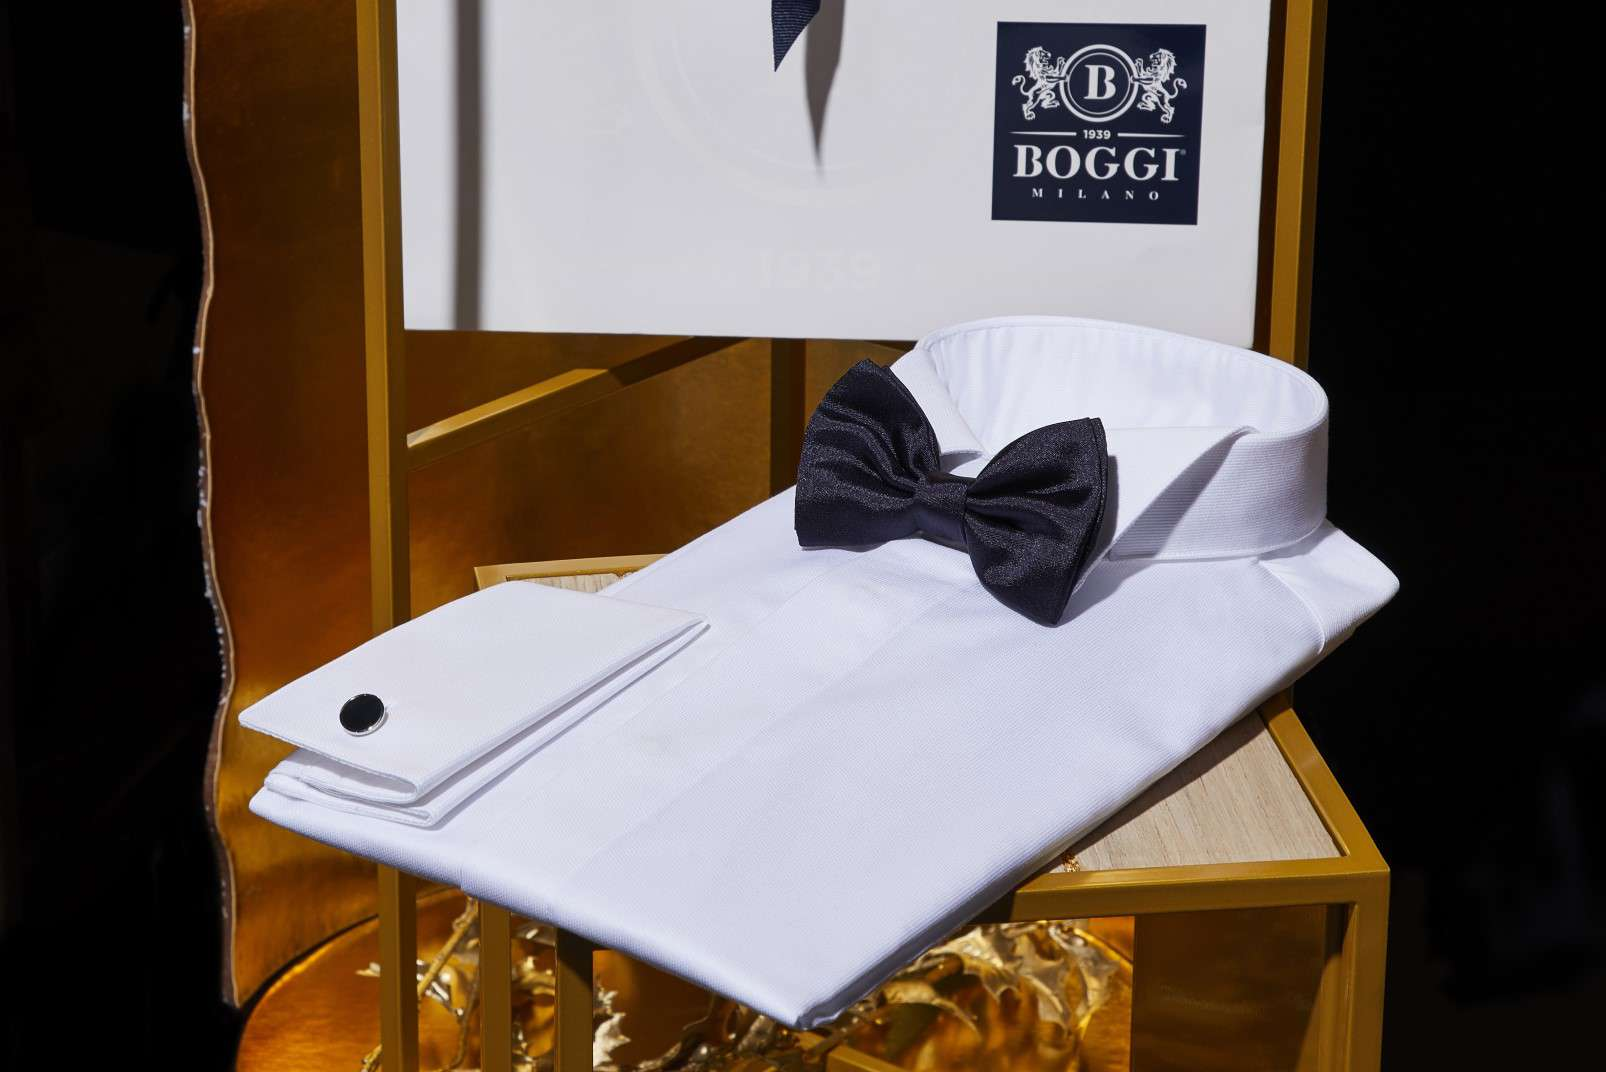 Boggi Milano gifts for a Gentleman - tuxedo shirt, black silk pre-tied bow tie